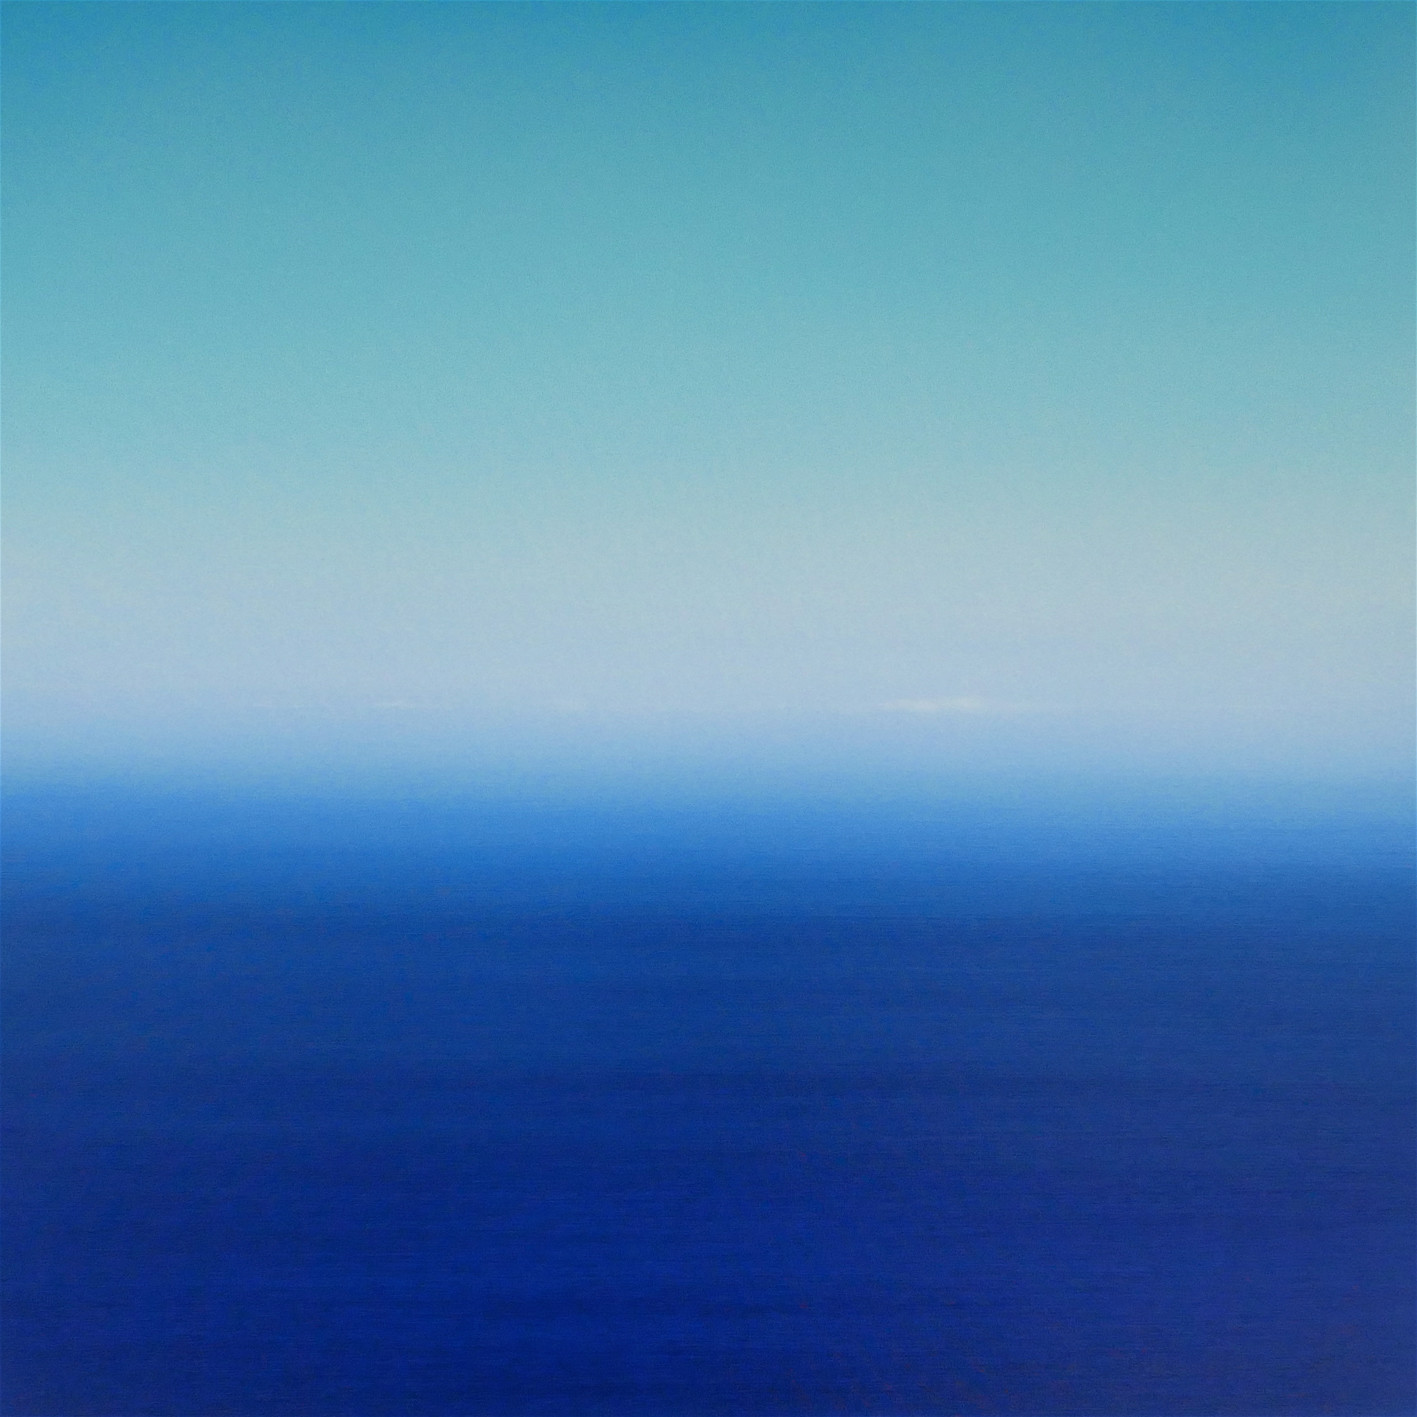 "<span class=""link fancybox-details-link""><a href=""/artists/78-martyn-perryman/works/6169-martyn-perryman-ocean-light-st-ives-2-2019/"">View Detail Page</a></span><div class=""artist""><strong>Martyn Perryman</strong></div> <div class=""title""><em>Ocean Light St Ives 2</em>, 2019</div> <div class=""signed_and_dated"">signed on reverse</div> <div class=""medium"">oil on canvas</div> <div class=""dimensions"">70 x 70 cm<br /> 27 1/2 x 27 1/2 in</div><div class=""copyright_line"">Own Art: £ 106 x 10 Months, 0% APR</div>"